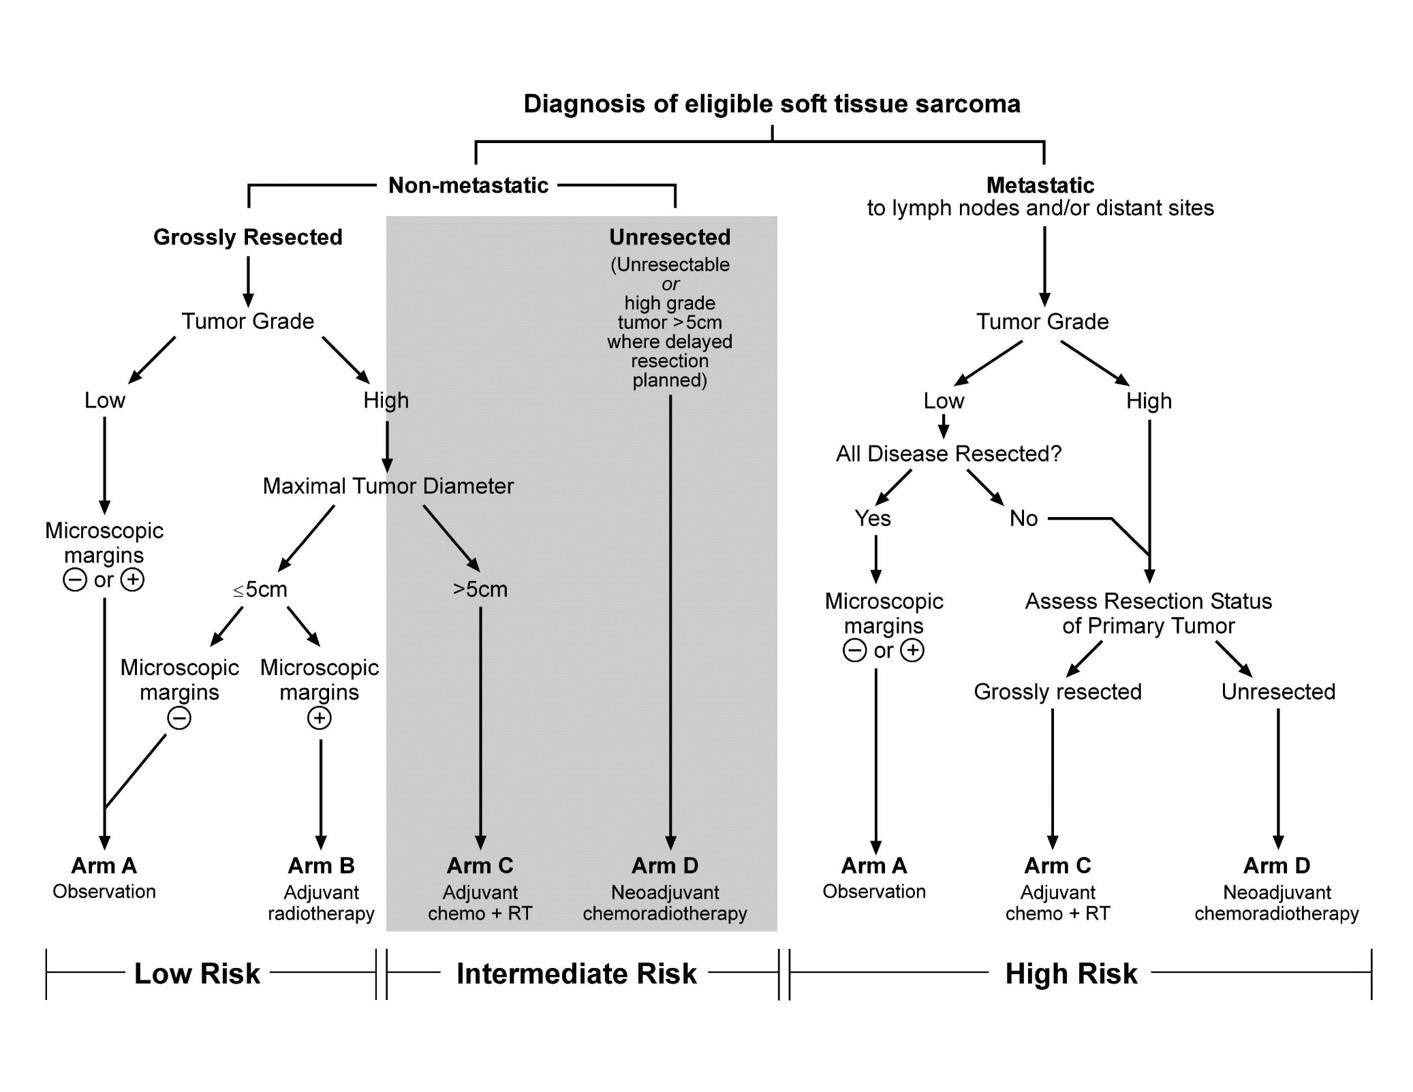 Chart showing risk stratification and treatment assignment for the Children's Oncology Group ARST0332 trial.